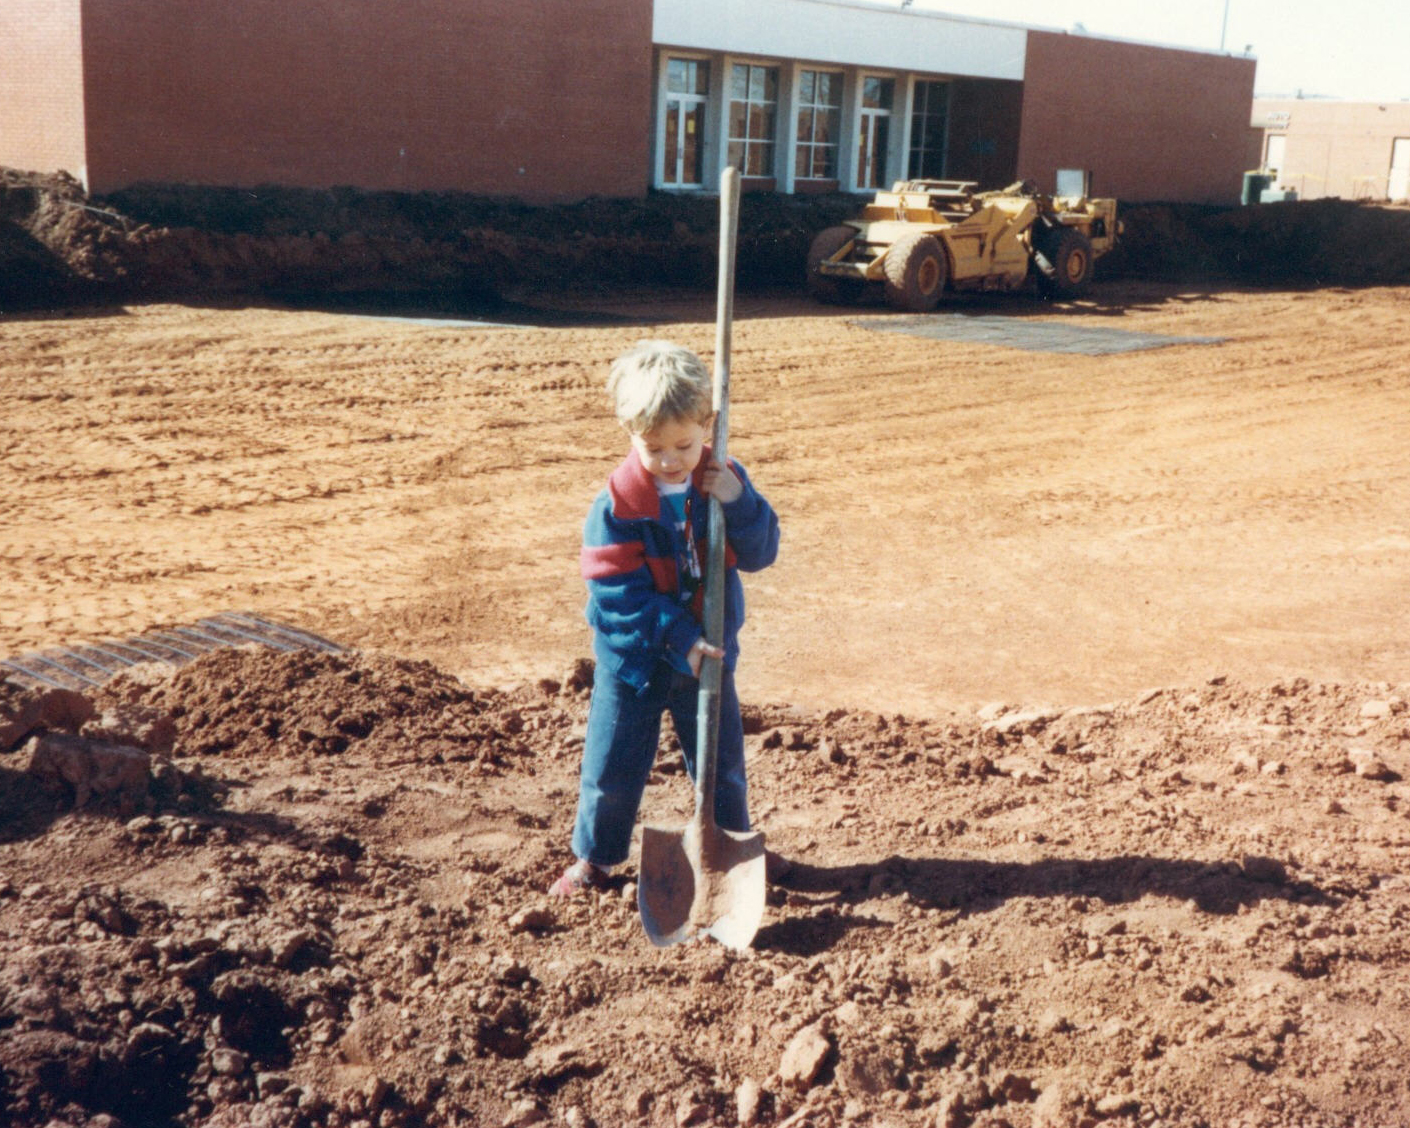 Weston digging on a job site